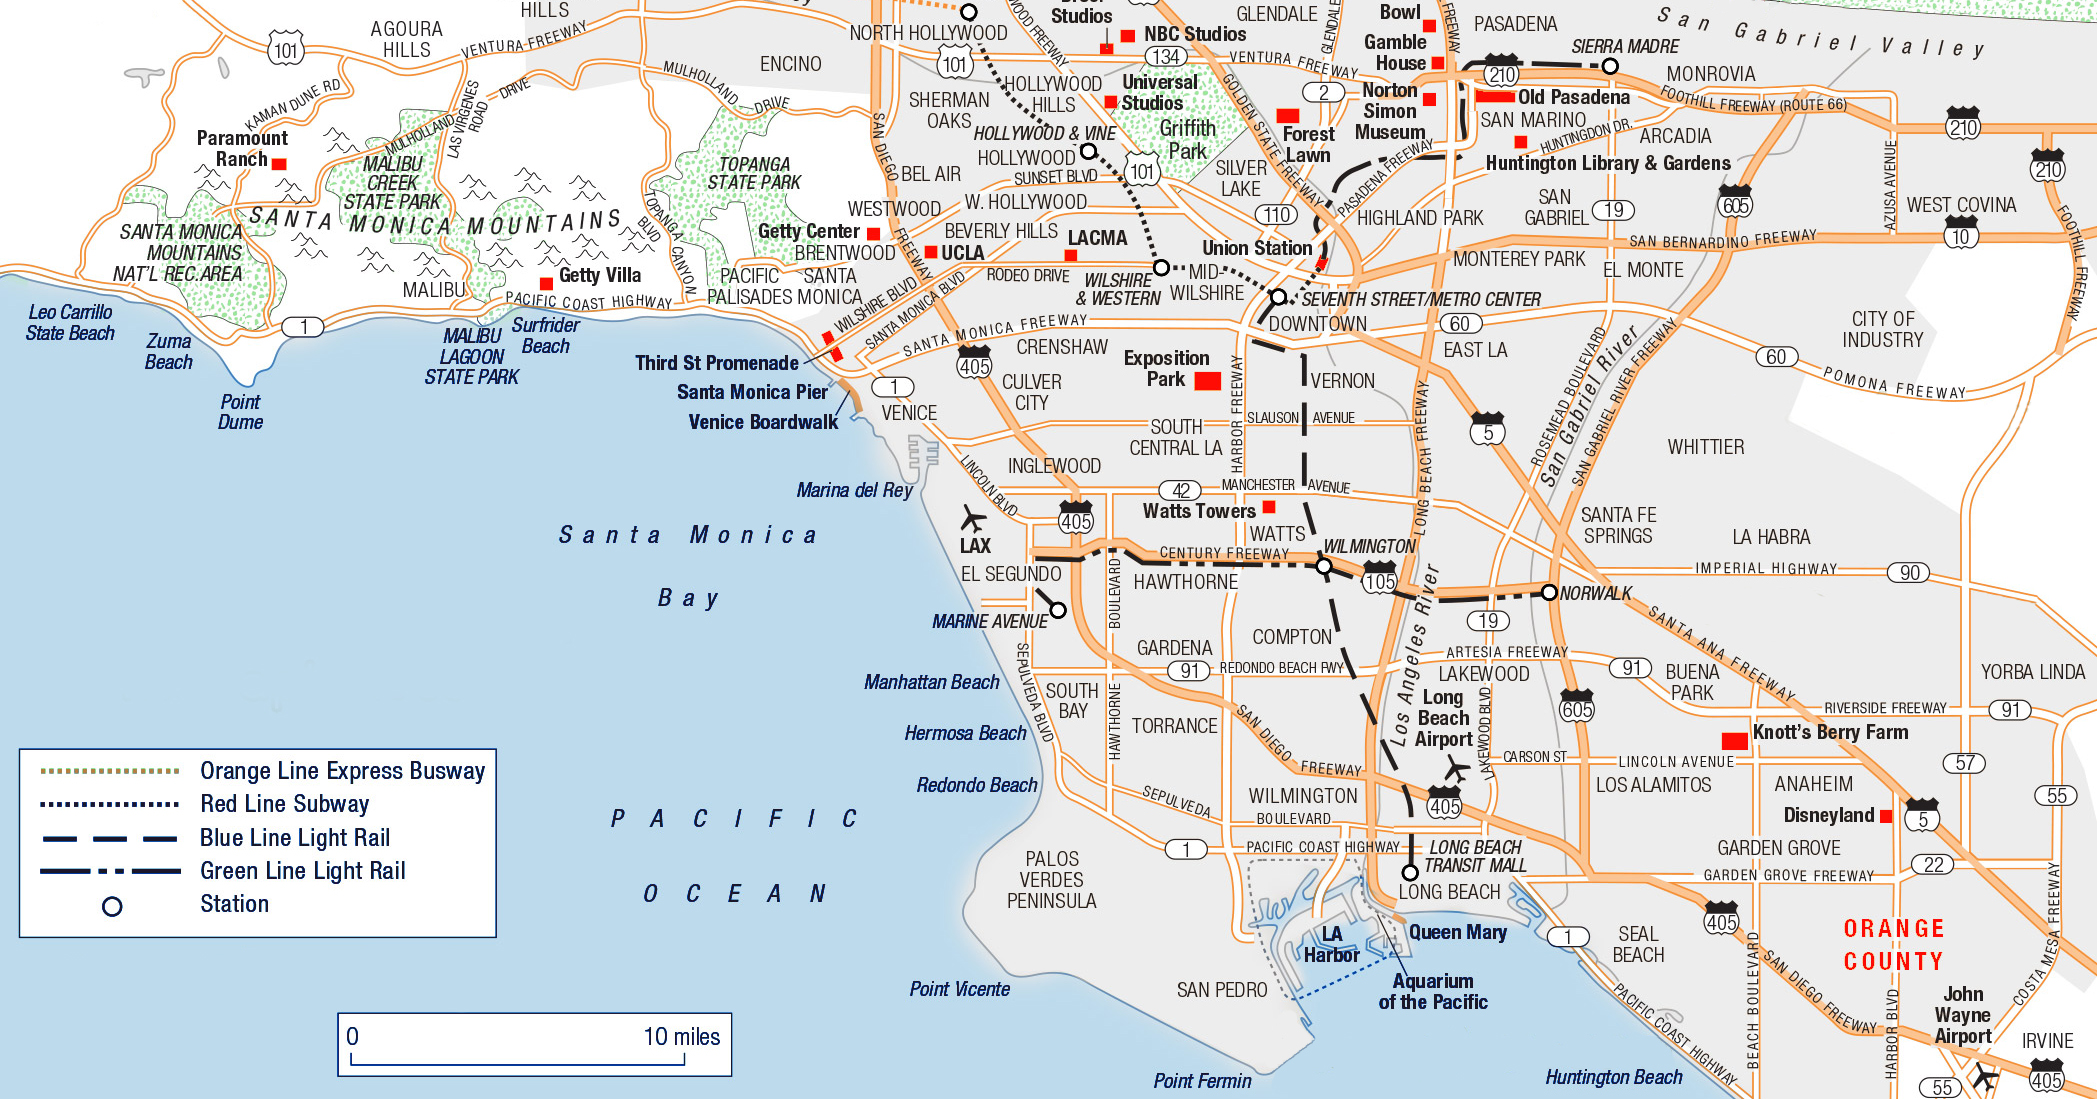 Large Los Angeles Maps for Free Download and Print | High